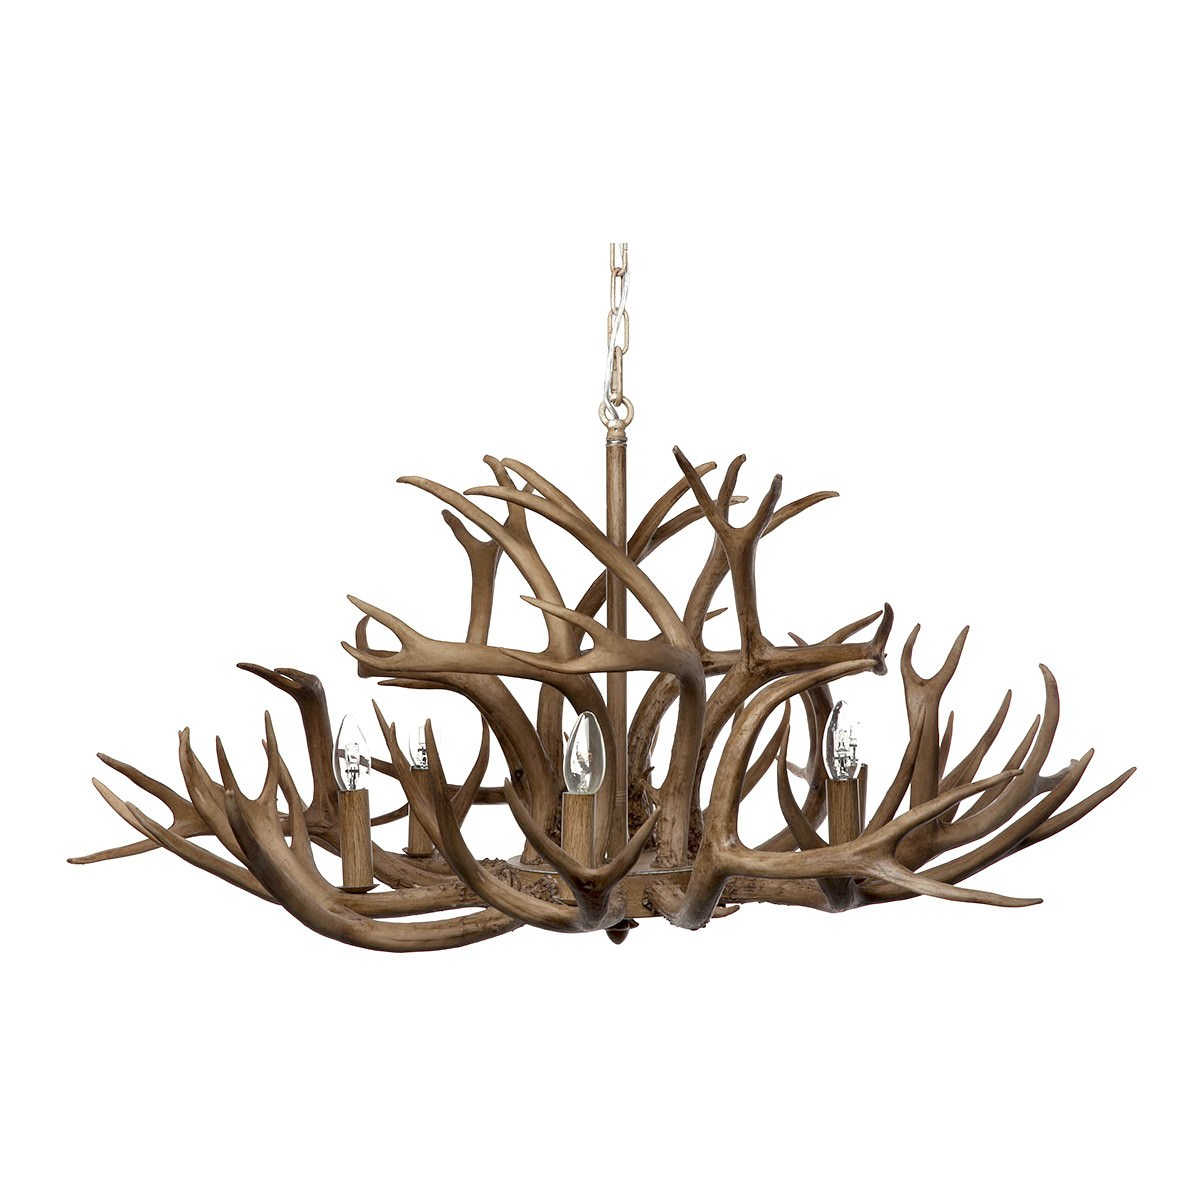 Image of: Aspen Antler Chandelier 8 Arm